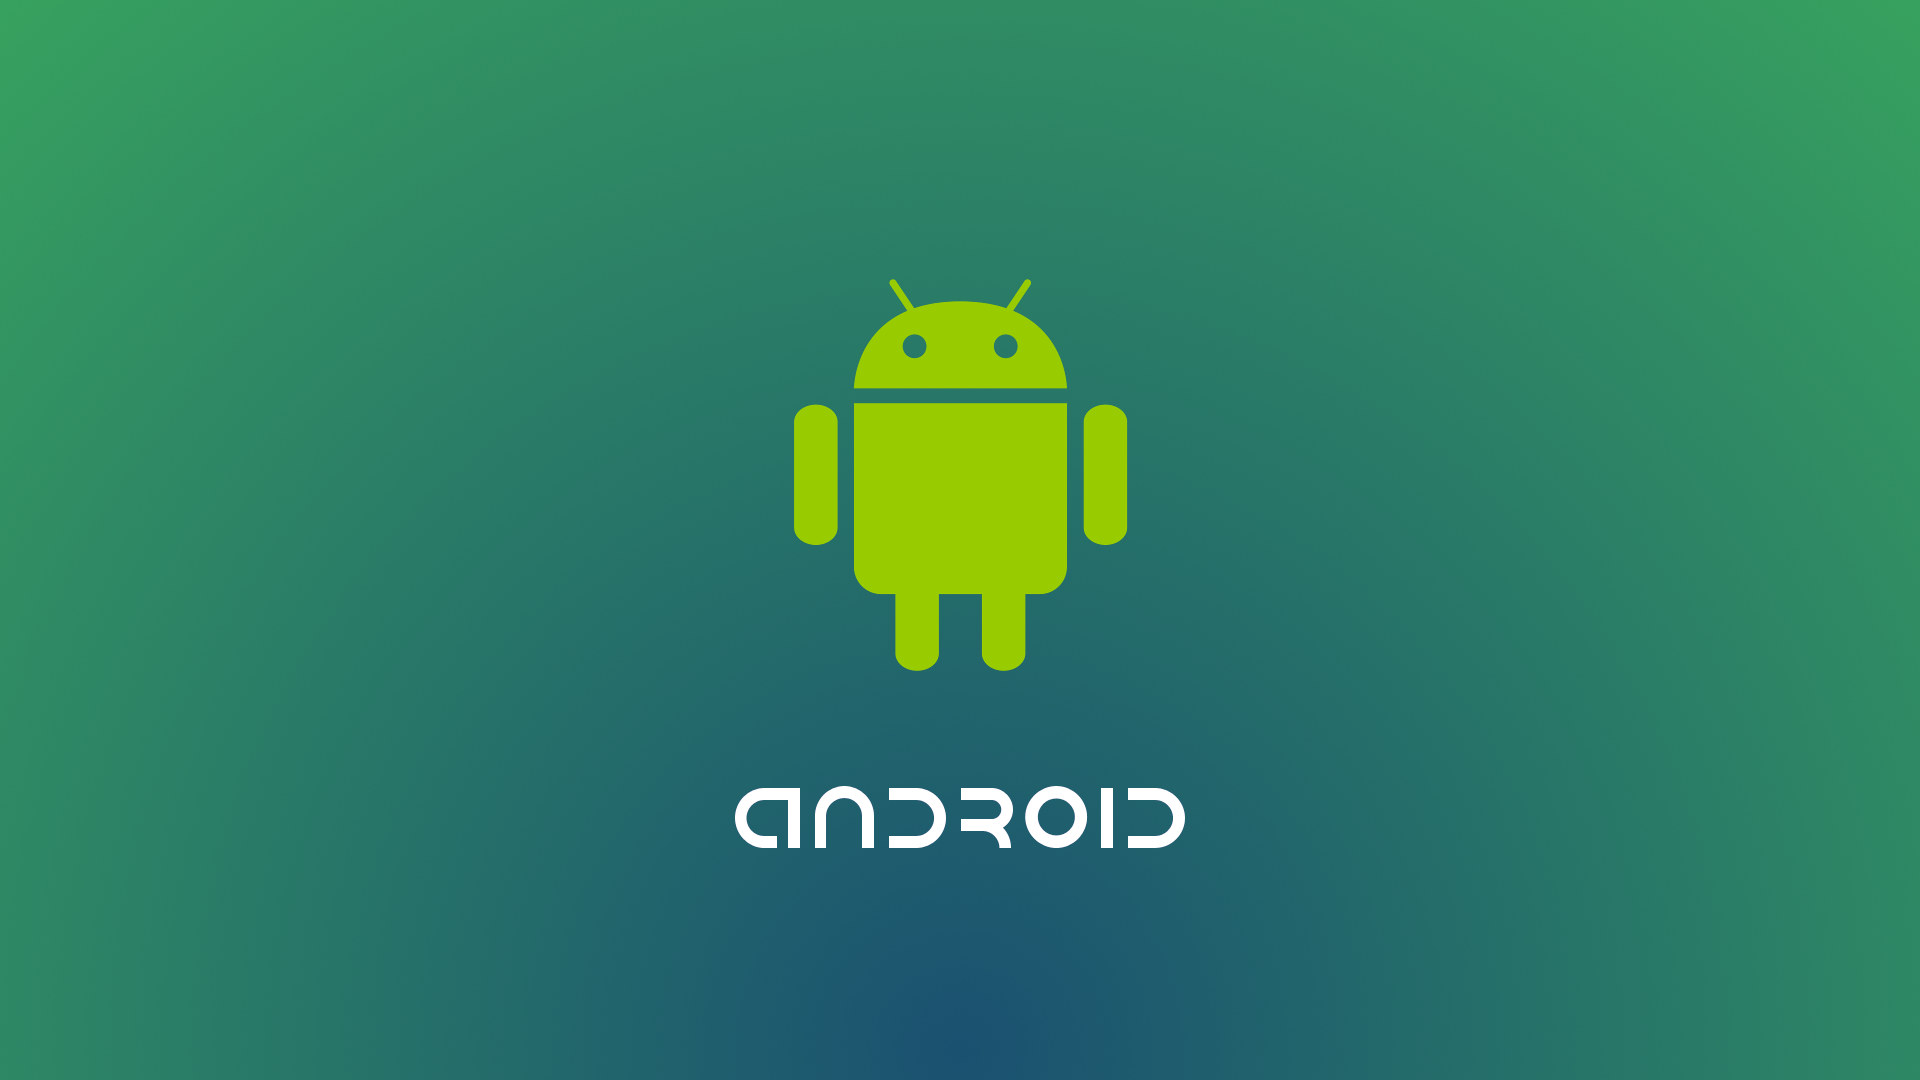 android for wallpaper 8 - [教學] 如何從Play Store 商店中將apk檔案提取出來?